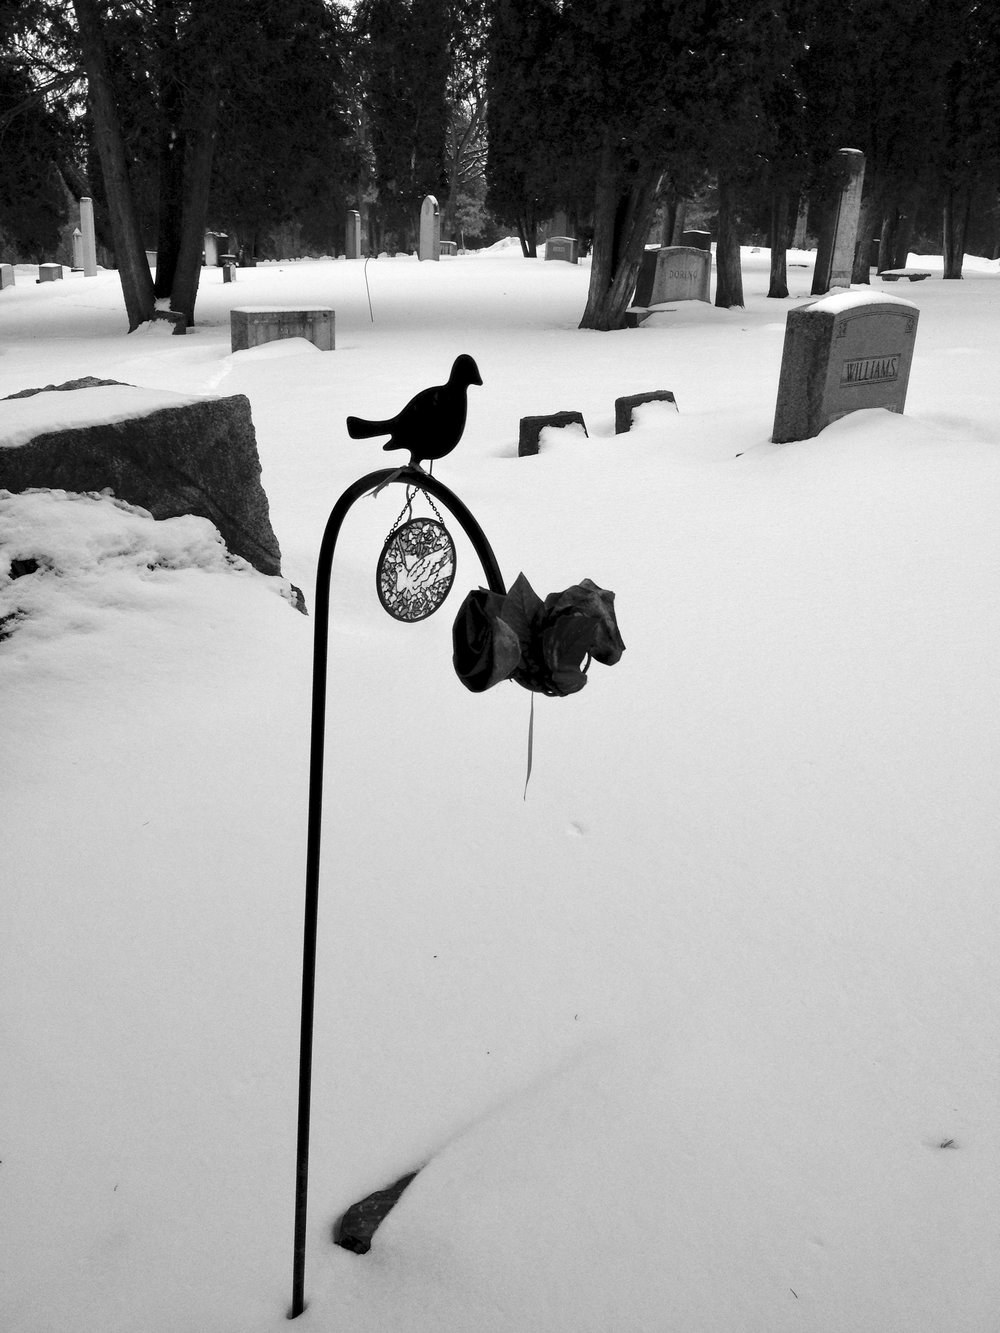 Raven? Forest Hill Cemetary. Madison, Wisconsin. February 2014. © William D. Walker